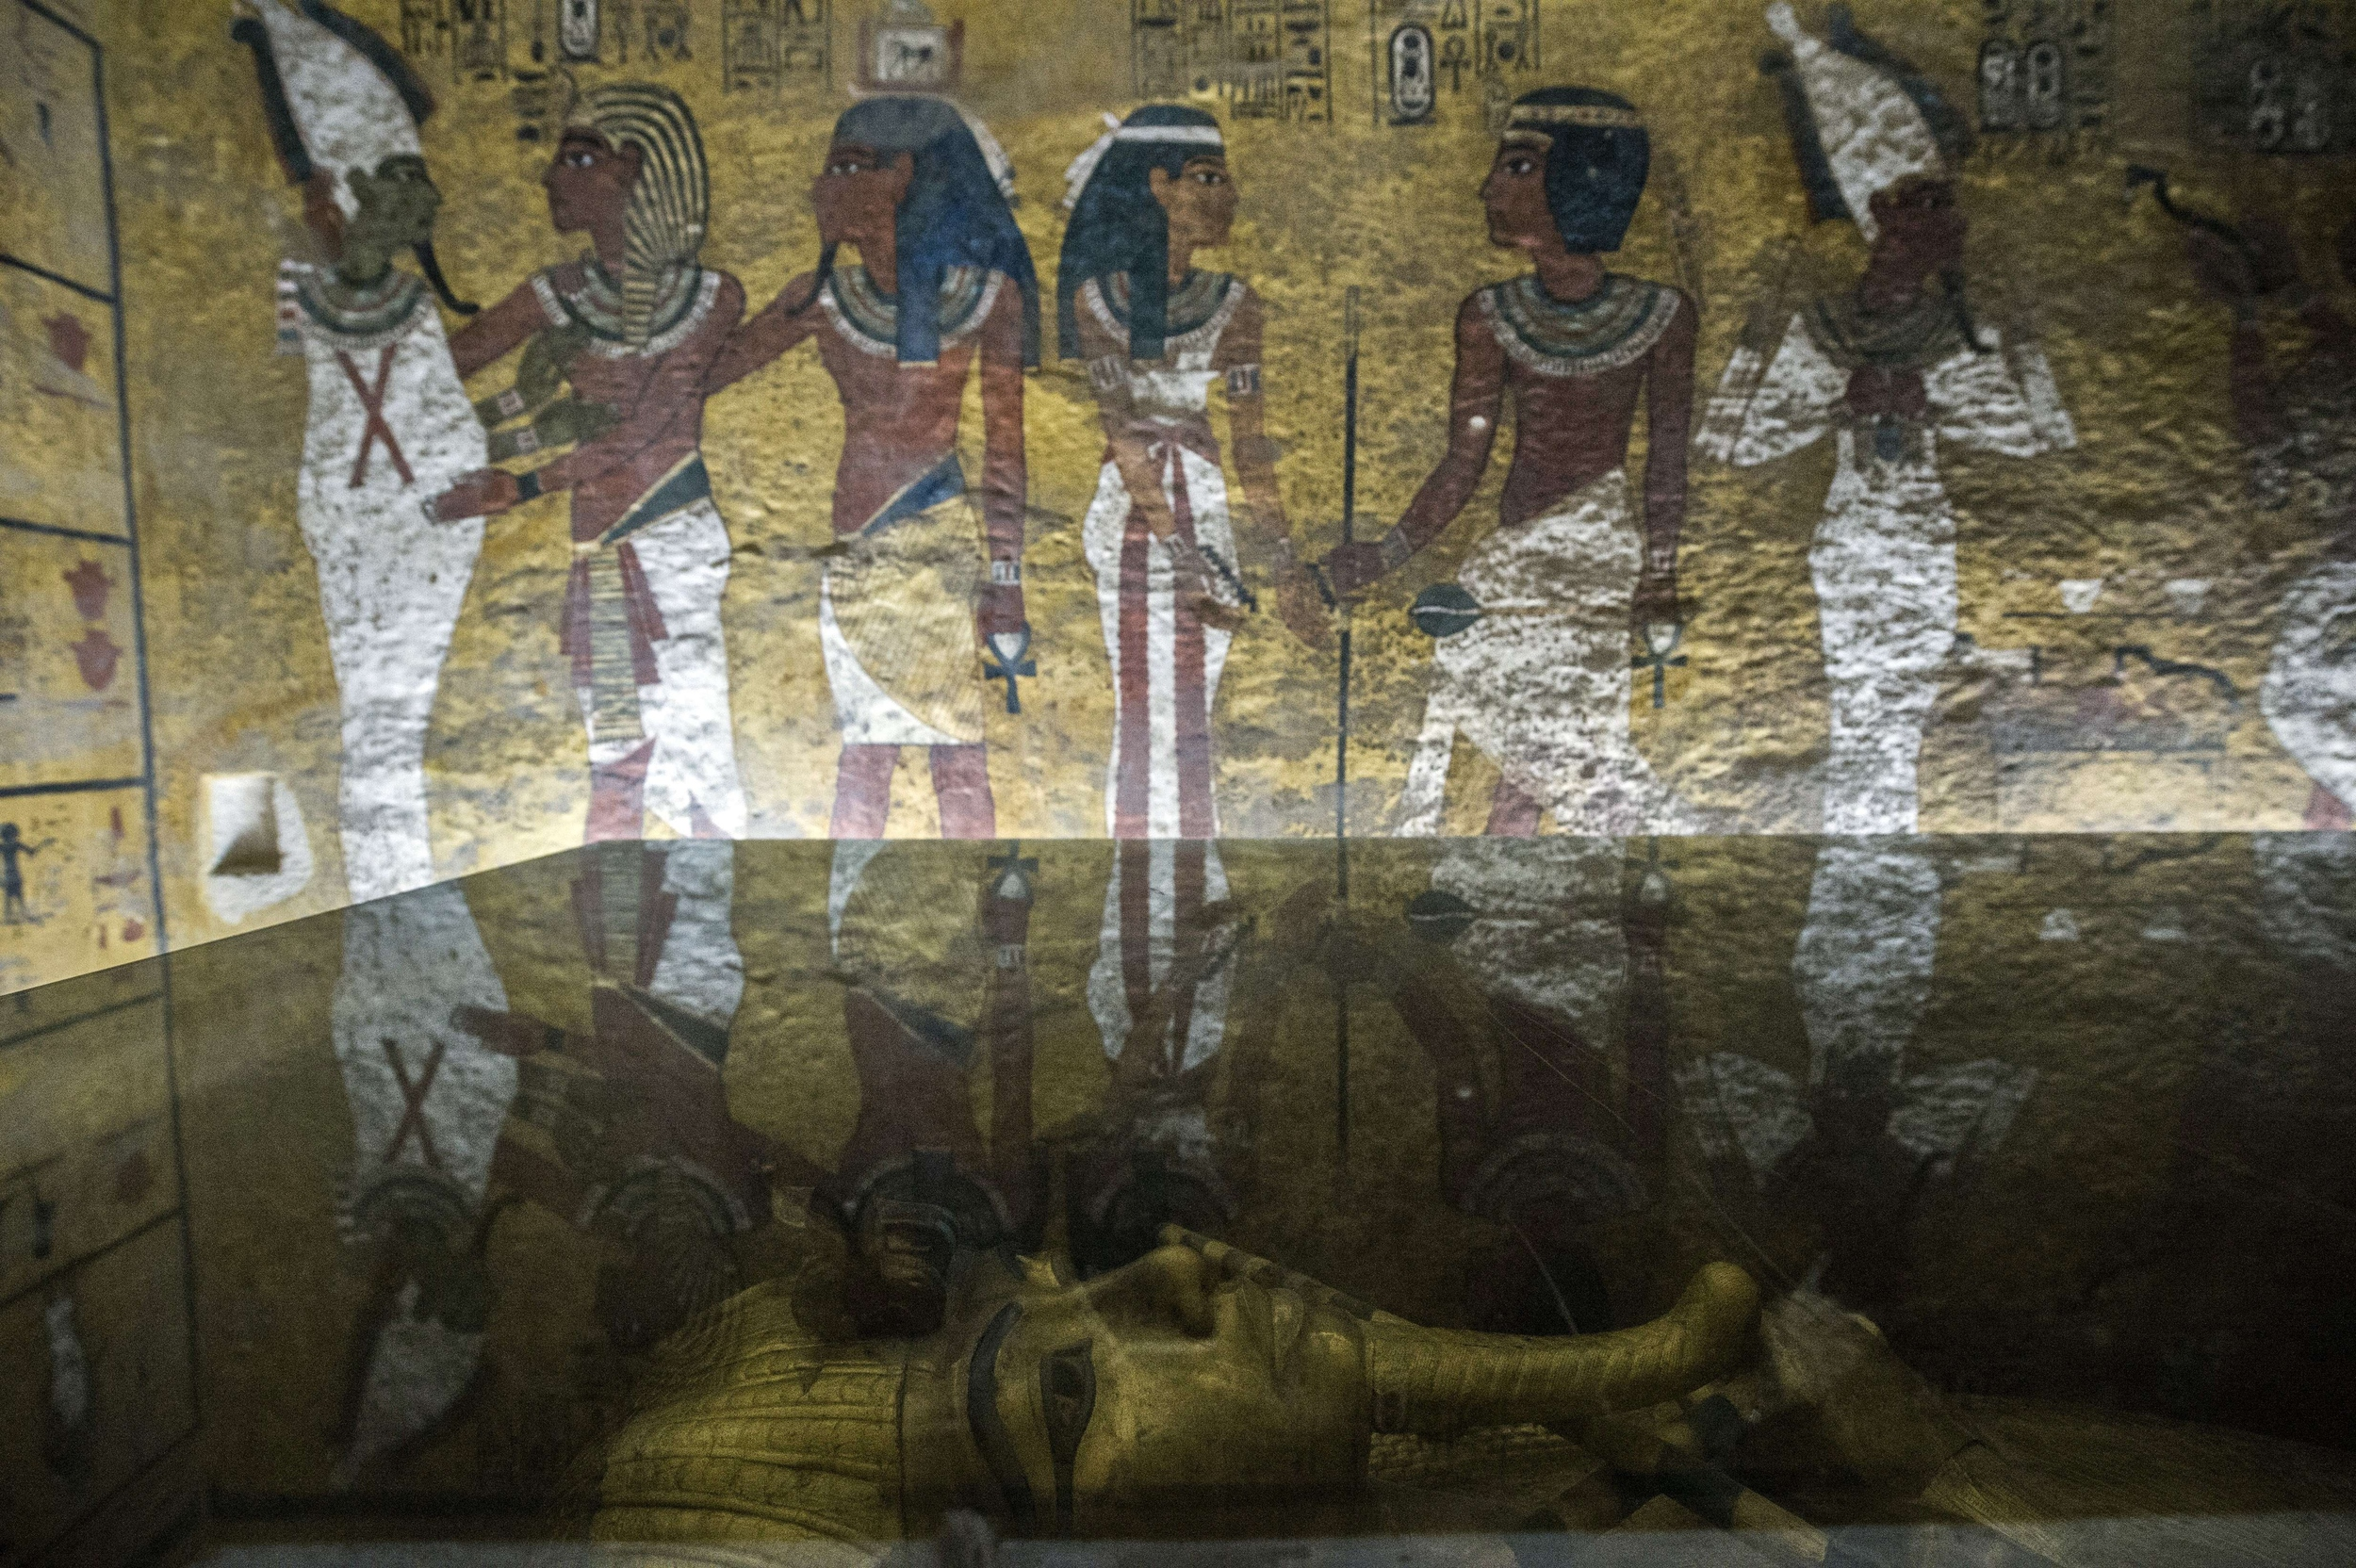 Pictured is the outermost of Tutankhamun's three coffins that cocooned the young king for over 3,000 years. Nicholas Reeves believes that the right-side of the wall in the background is largely false, designed to foil tomb robbers and protect whatever lies beyond. Photo: Khaled Desouki.